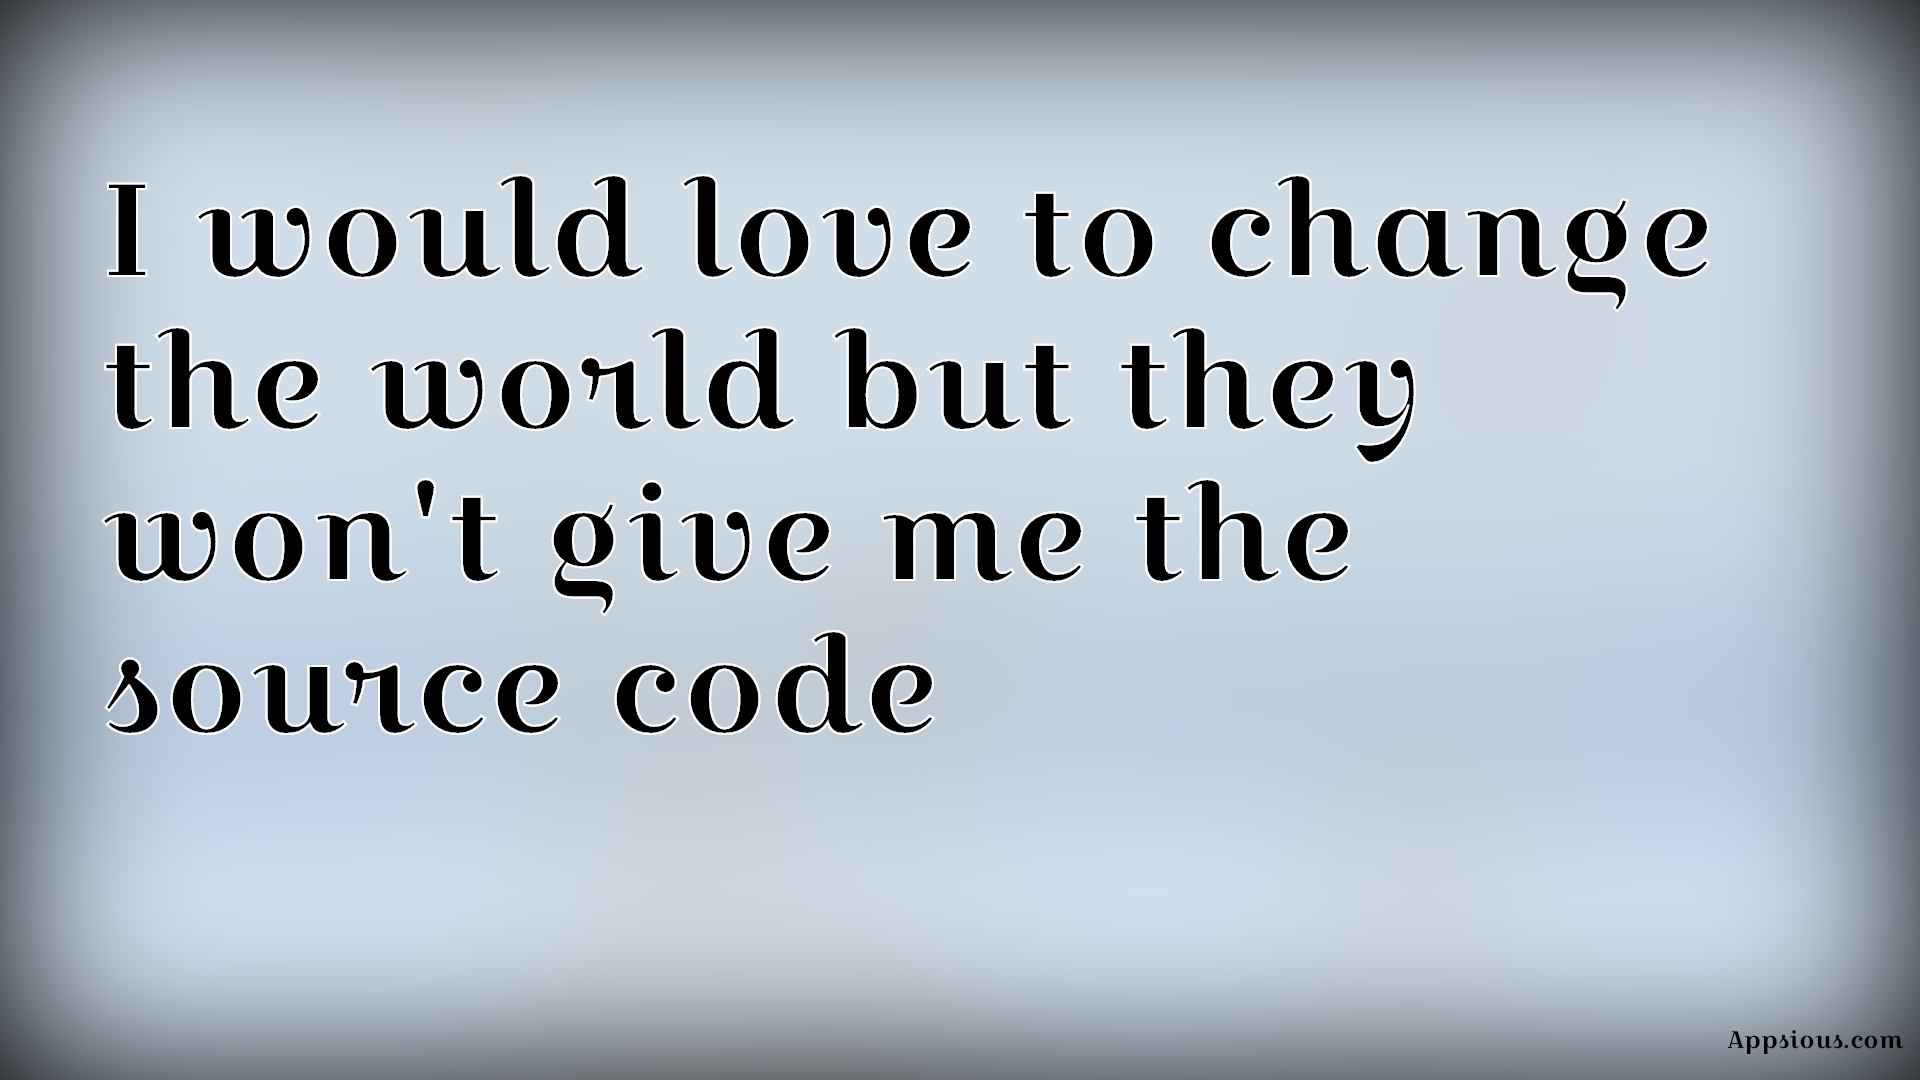 I would love to change the world but they won't give me the source code